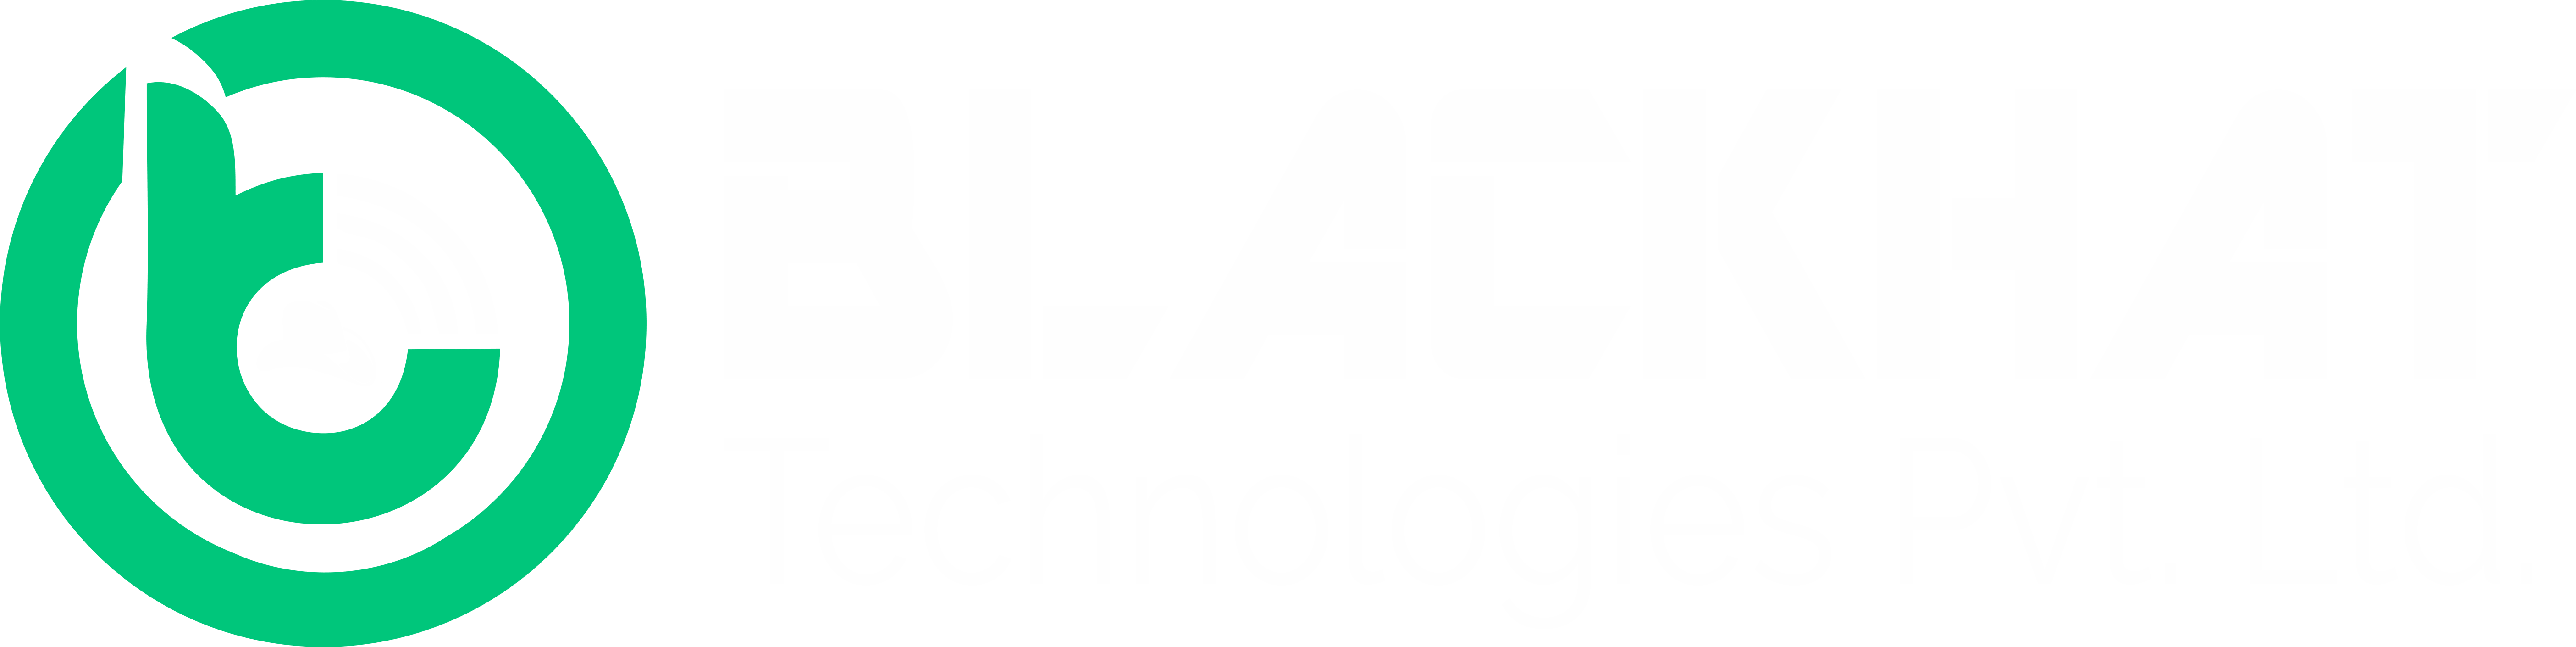 blackhat technologies pvt. ltd. logo